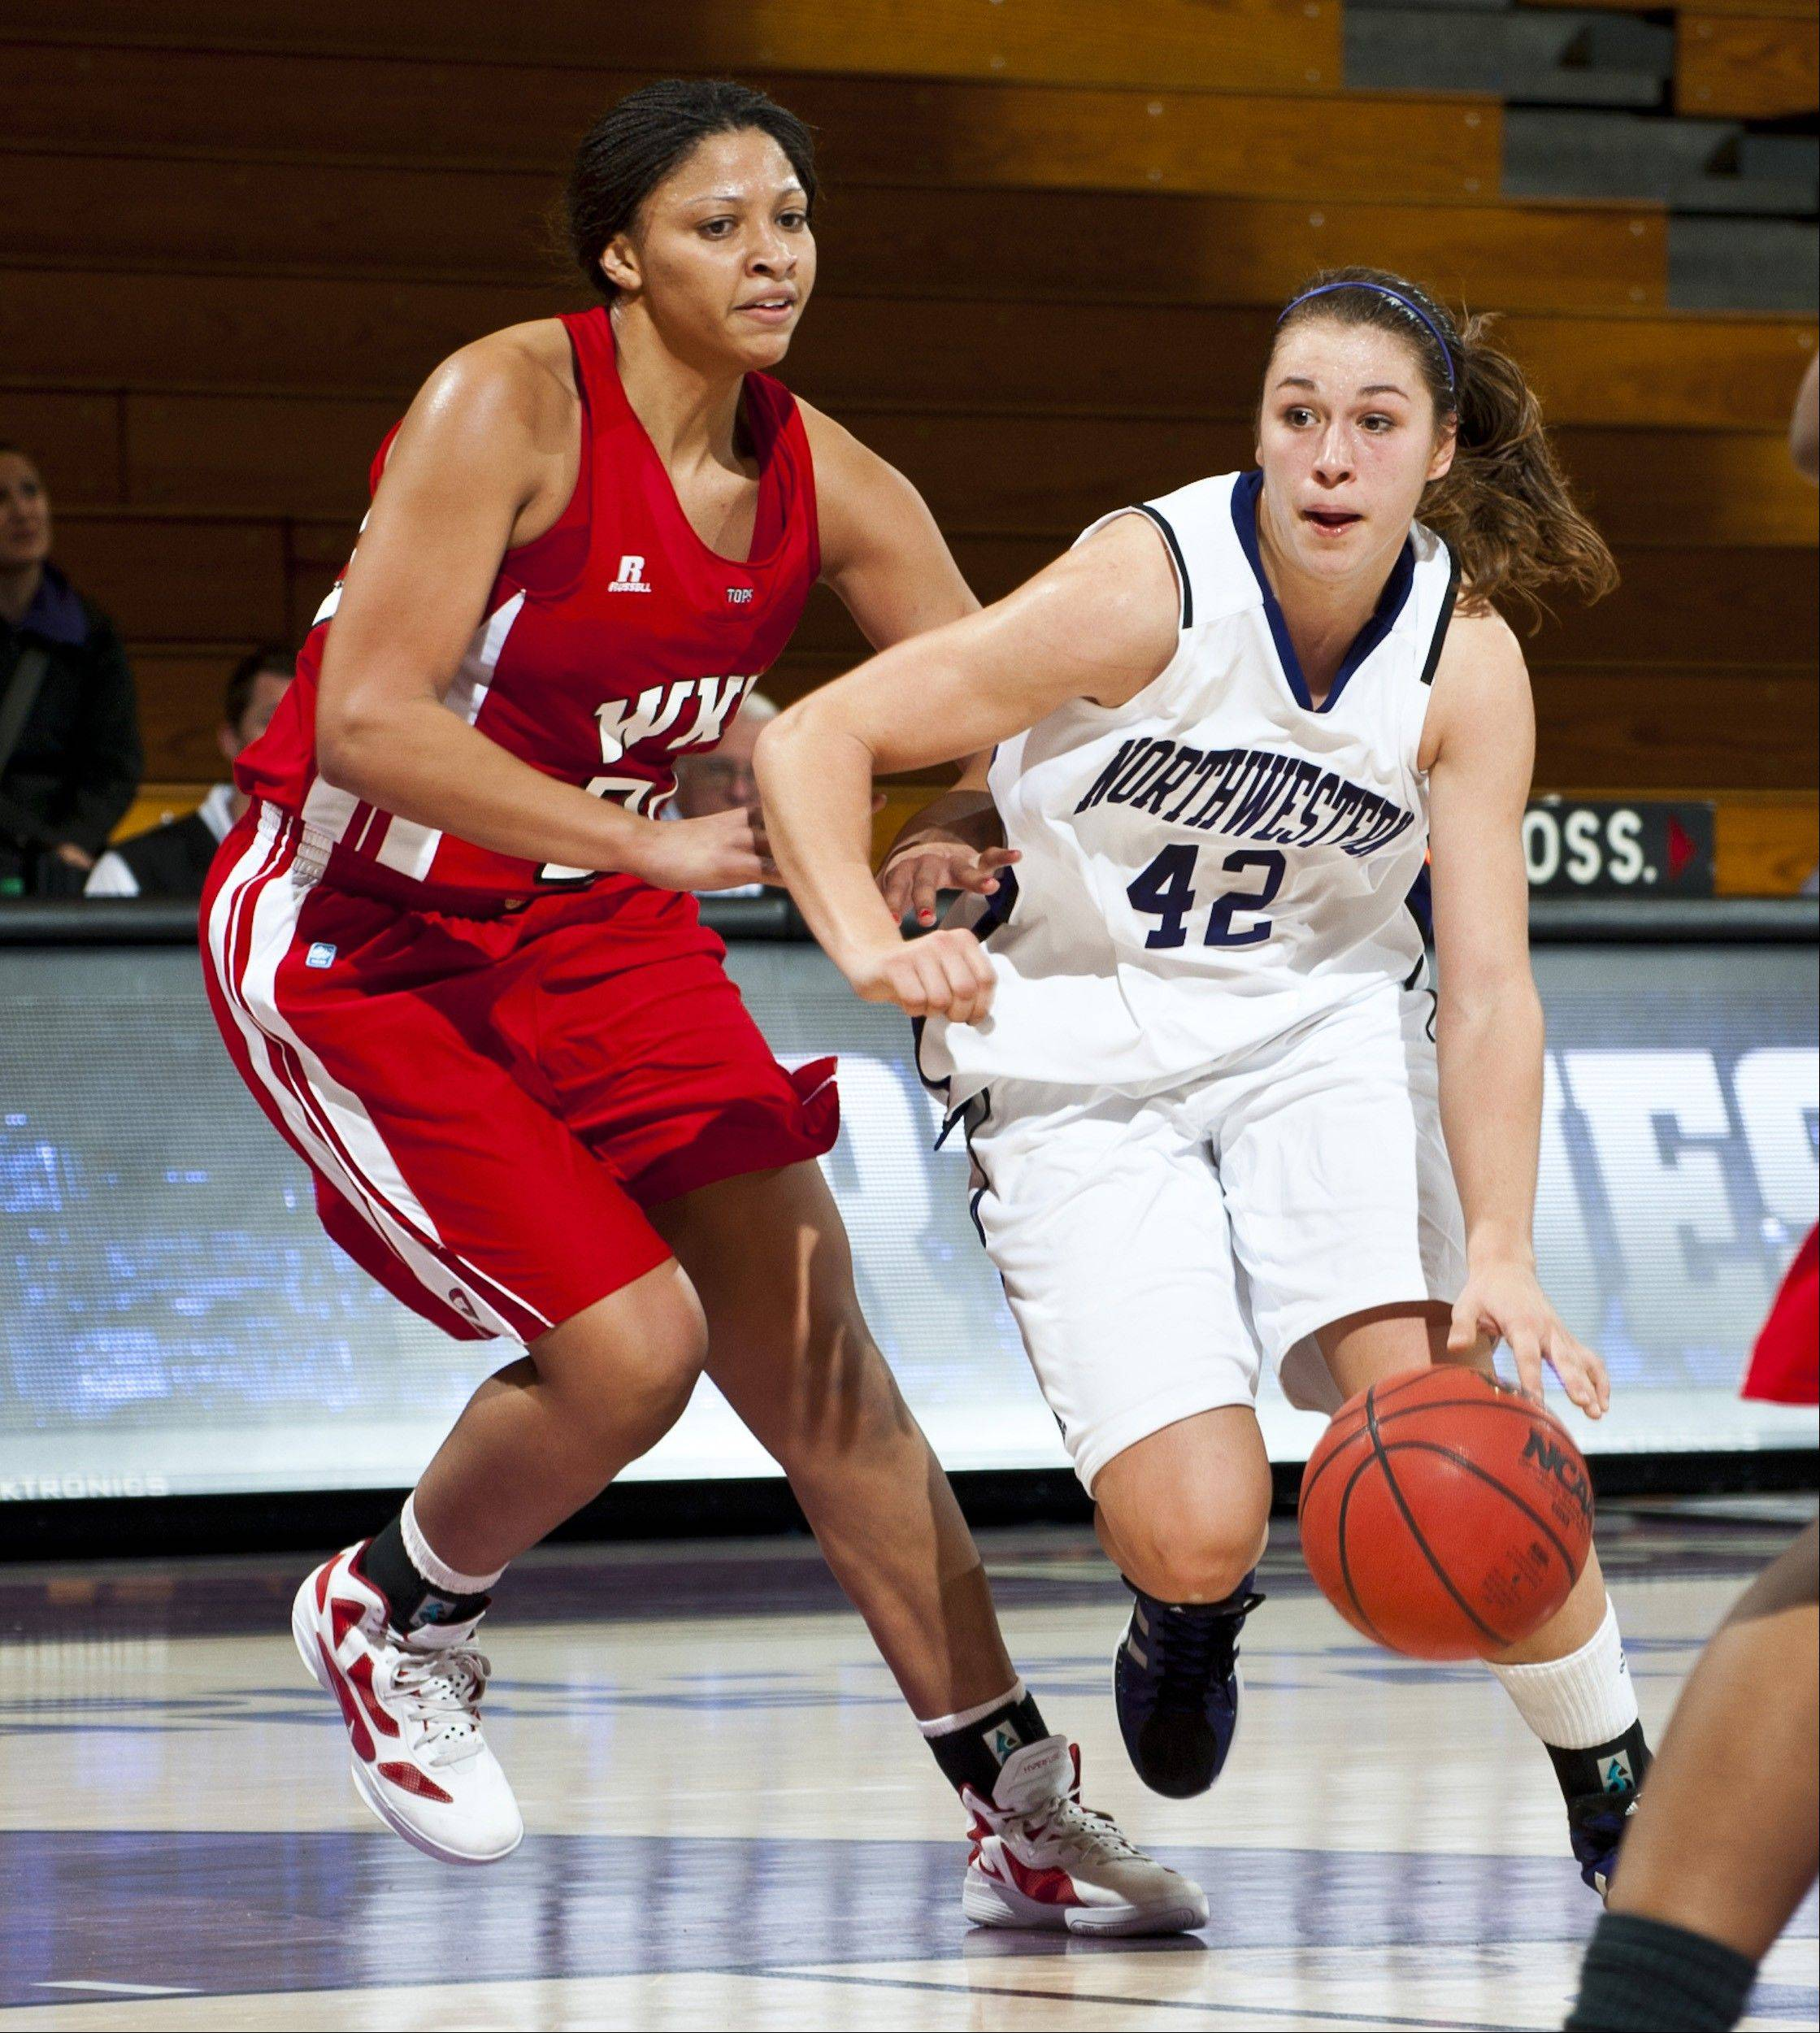 Karly Roser, a freshman point guard for Northwestern, has already had two double-doubles for the Wildcats this season. As a high school player she made the Canadian National Team.